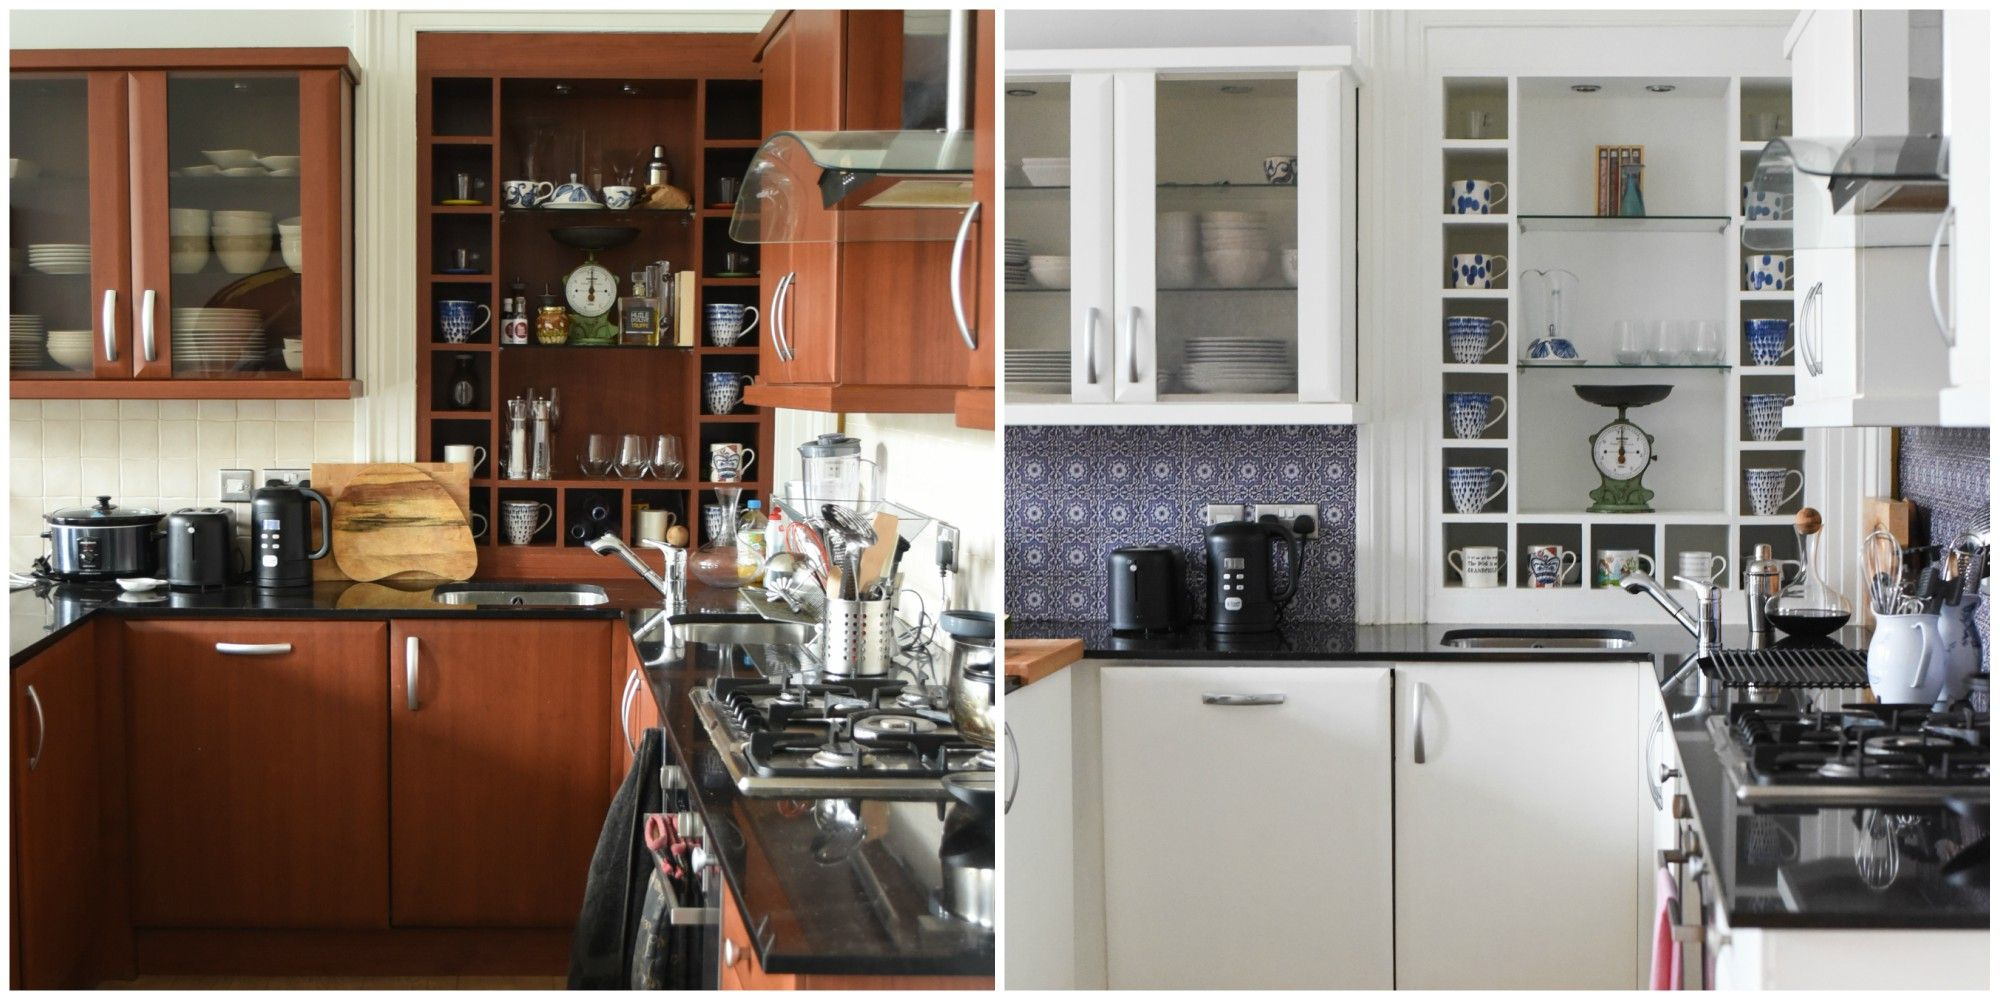 Home Makeover Ideas Pictures Of Room Design Makeovers - Kitchen remodels before and after photos